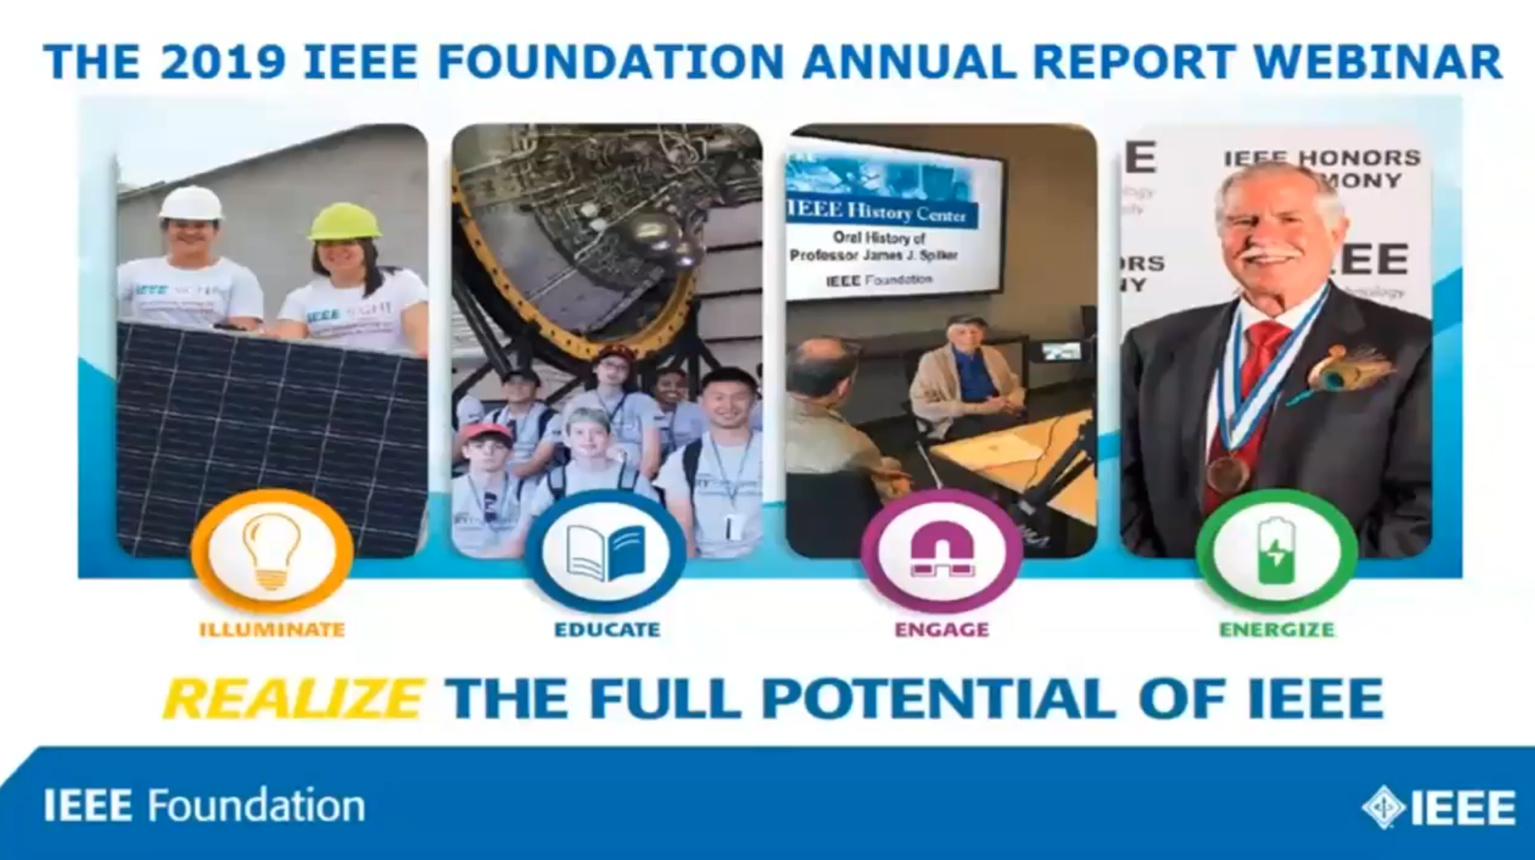 IEEE Foundation Leadership Shares Program Impacts